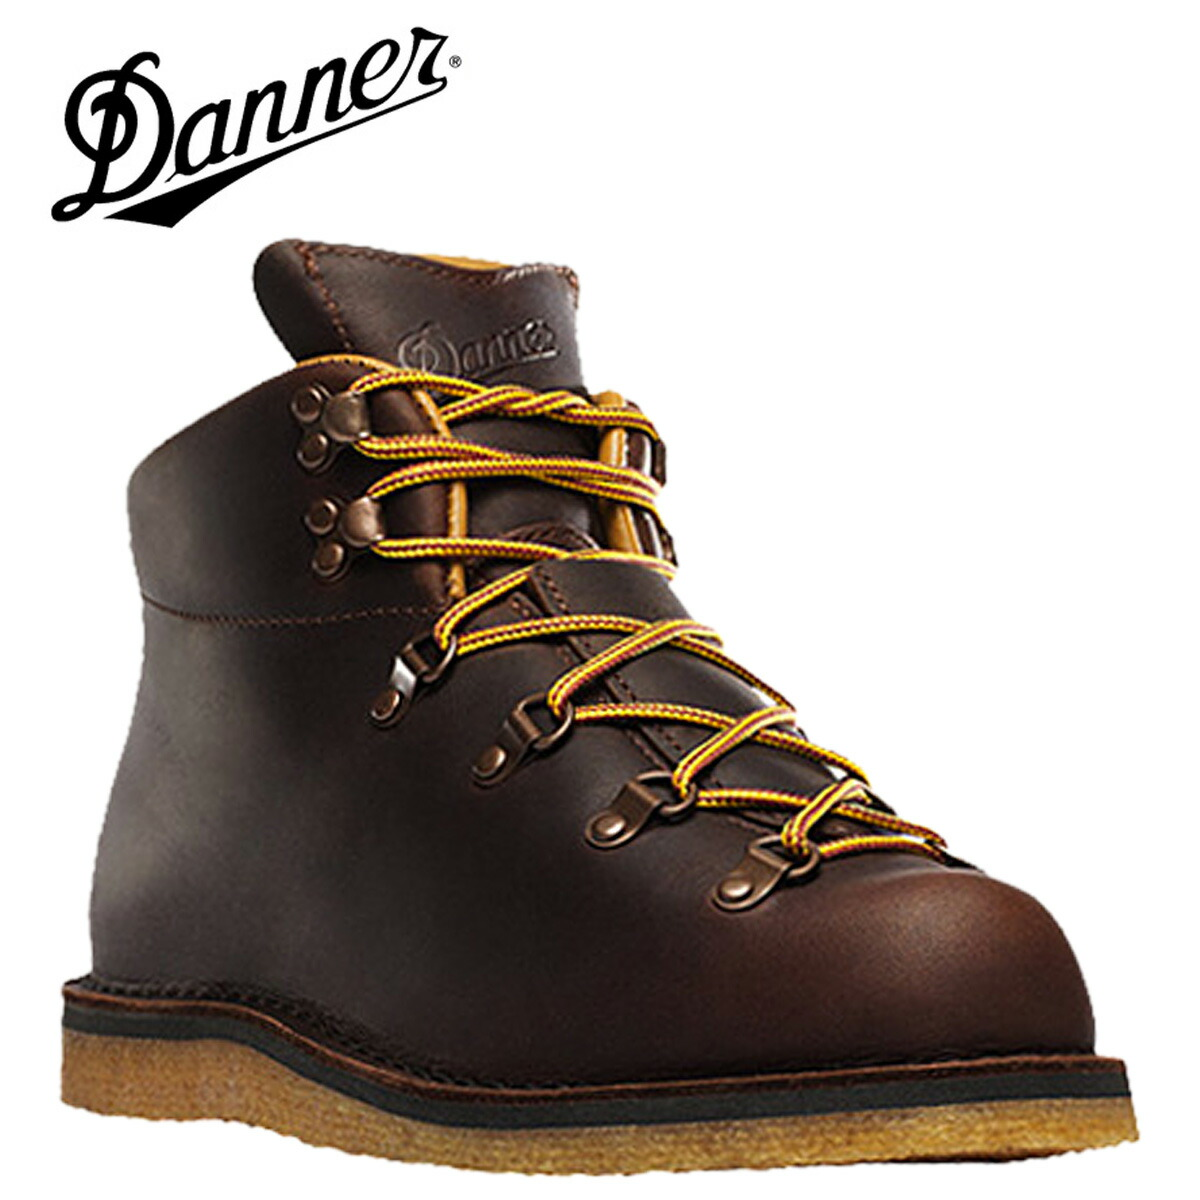 Sugar Online Shop Danner Danner Mountain Trail Lotus